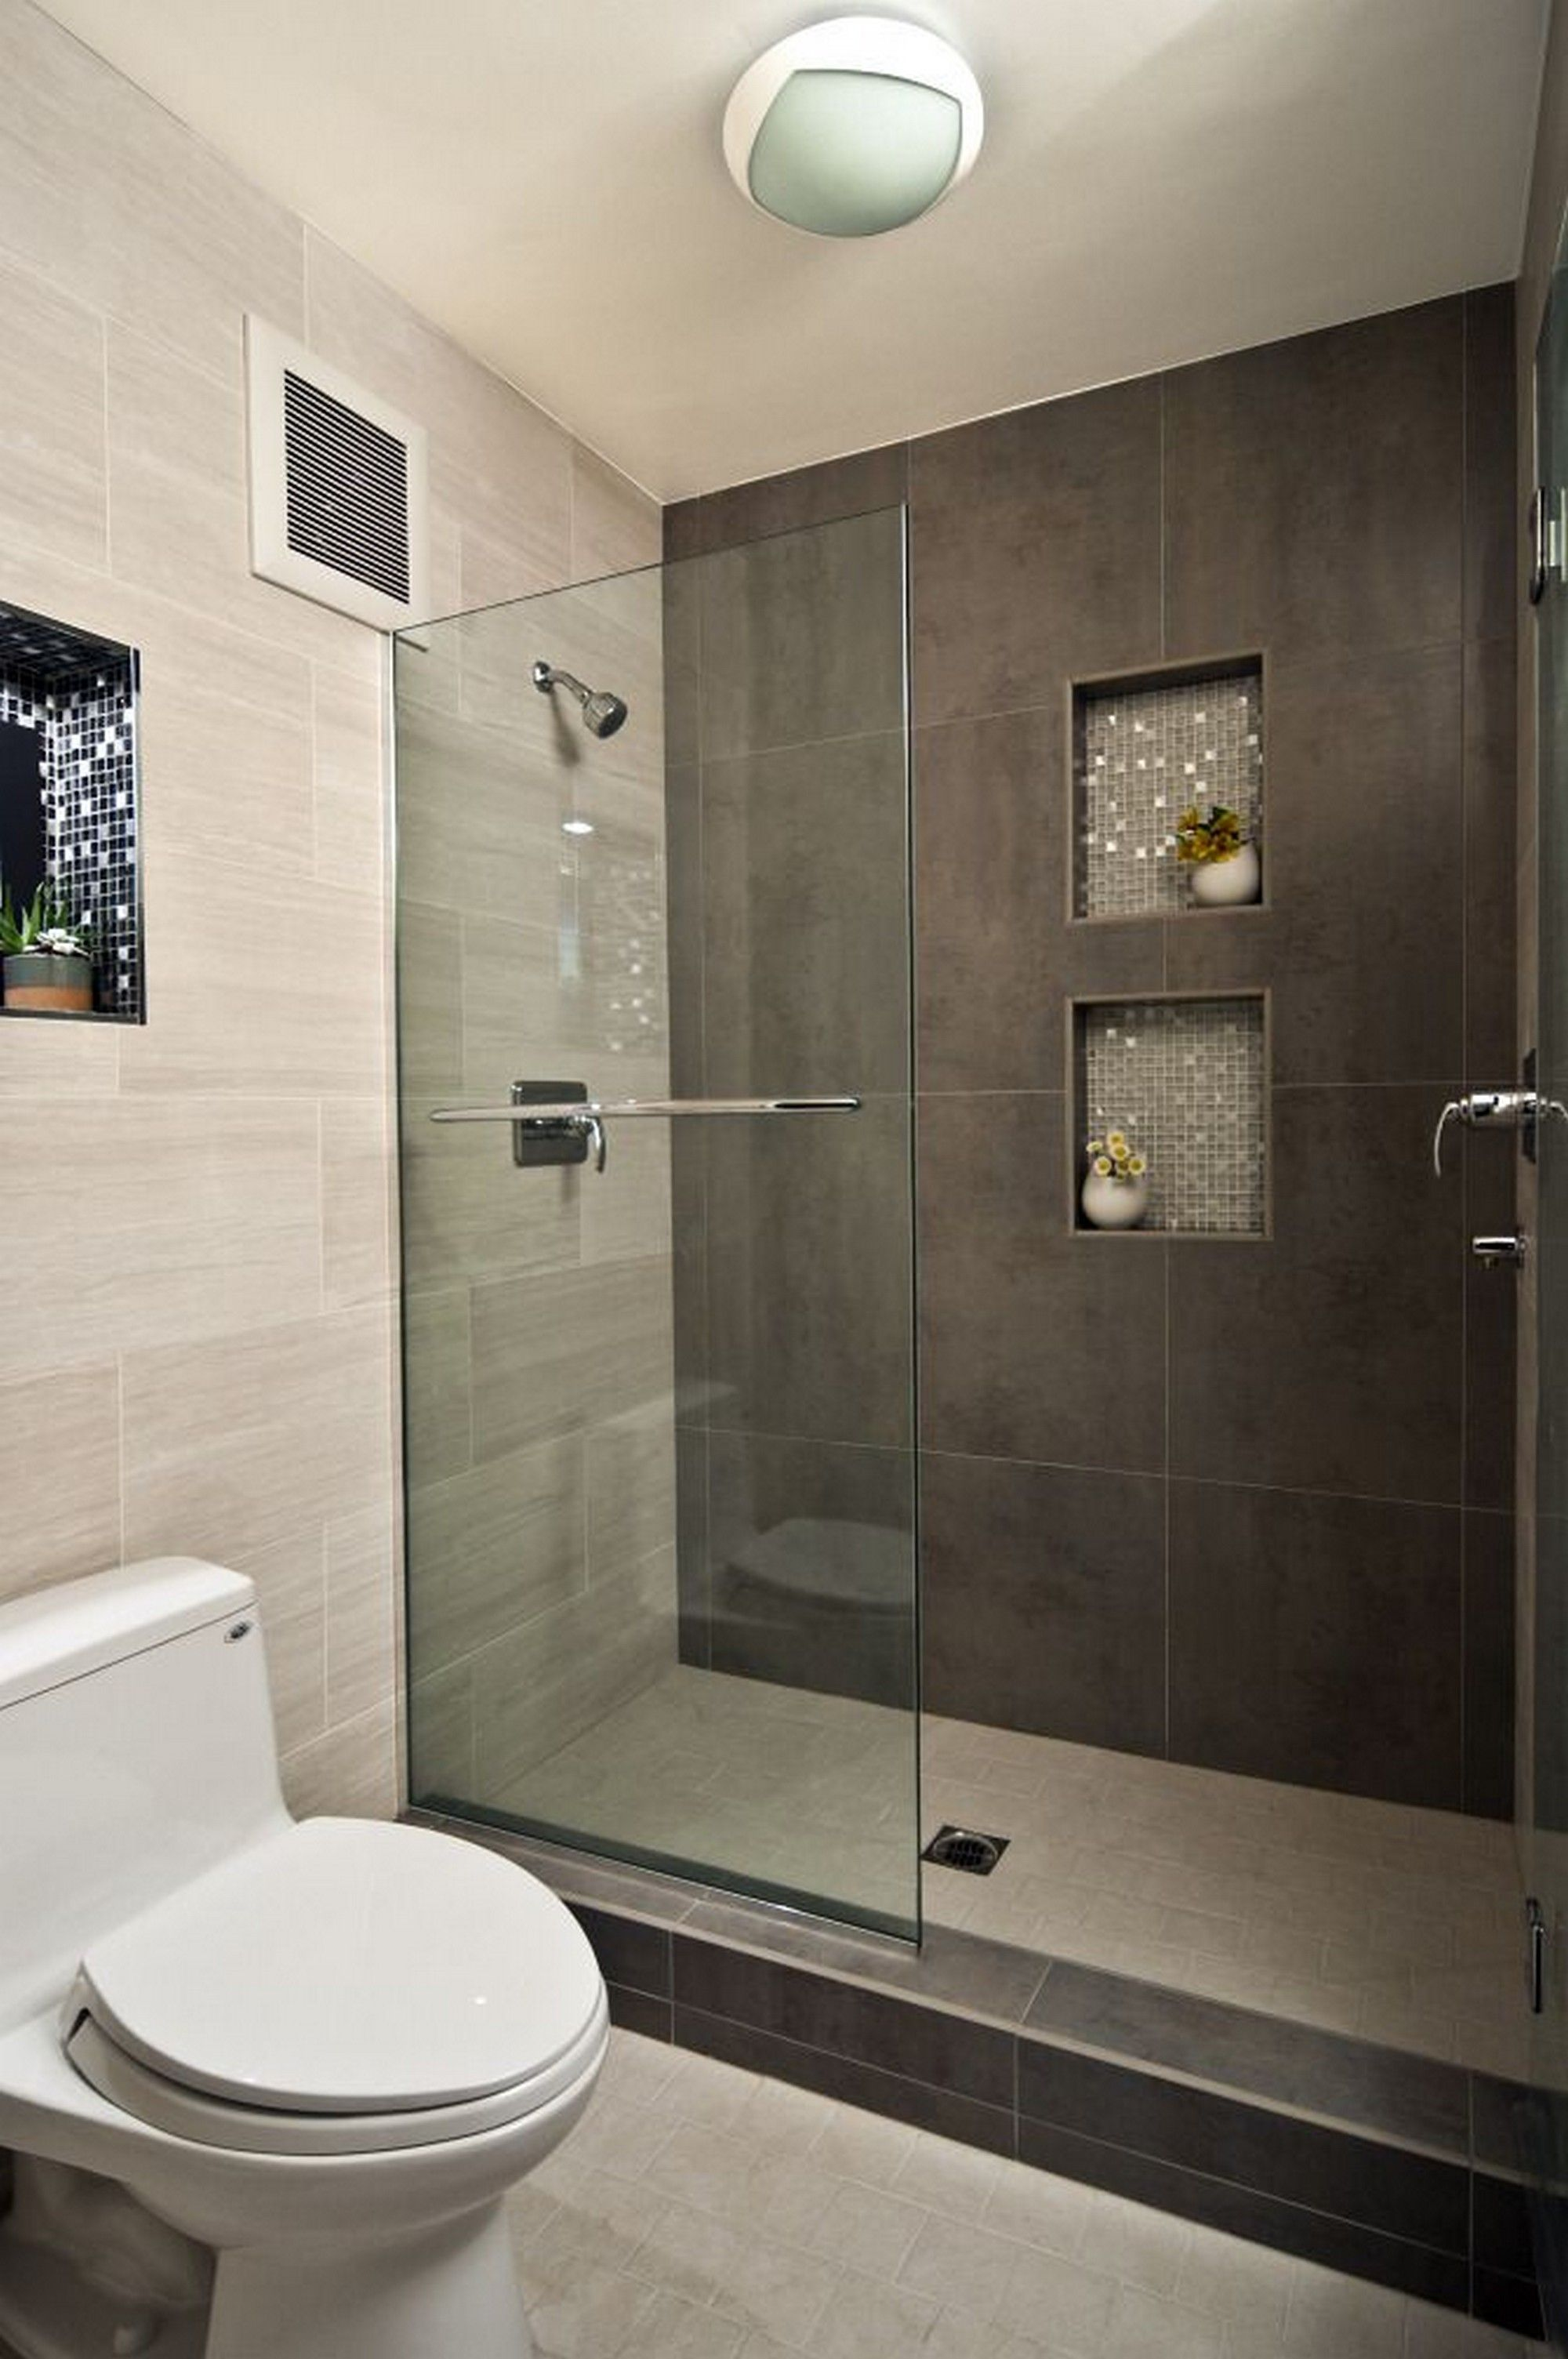 Modern Bathroom Design Ideas with Walk In Shower in 2018 | Bathroom on half bath design ideas, small bedroom design, bathtub design ideas, small bathroom shower ideas, small bathroom ideas on a budget, small bathroom decorating ideas, closet design ideas, bathroom remodeling ideas, bathroom countertop ideas, interior design ideas, small rustic bathroom ideas, bathroom layout ideas, foyer design ideas, room design ideas, small bedroom ideas, shower design ideas, hallway design ideas, small bathroom wall ideas, bathroom color ideas, washroom design ideas,